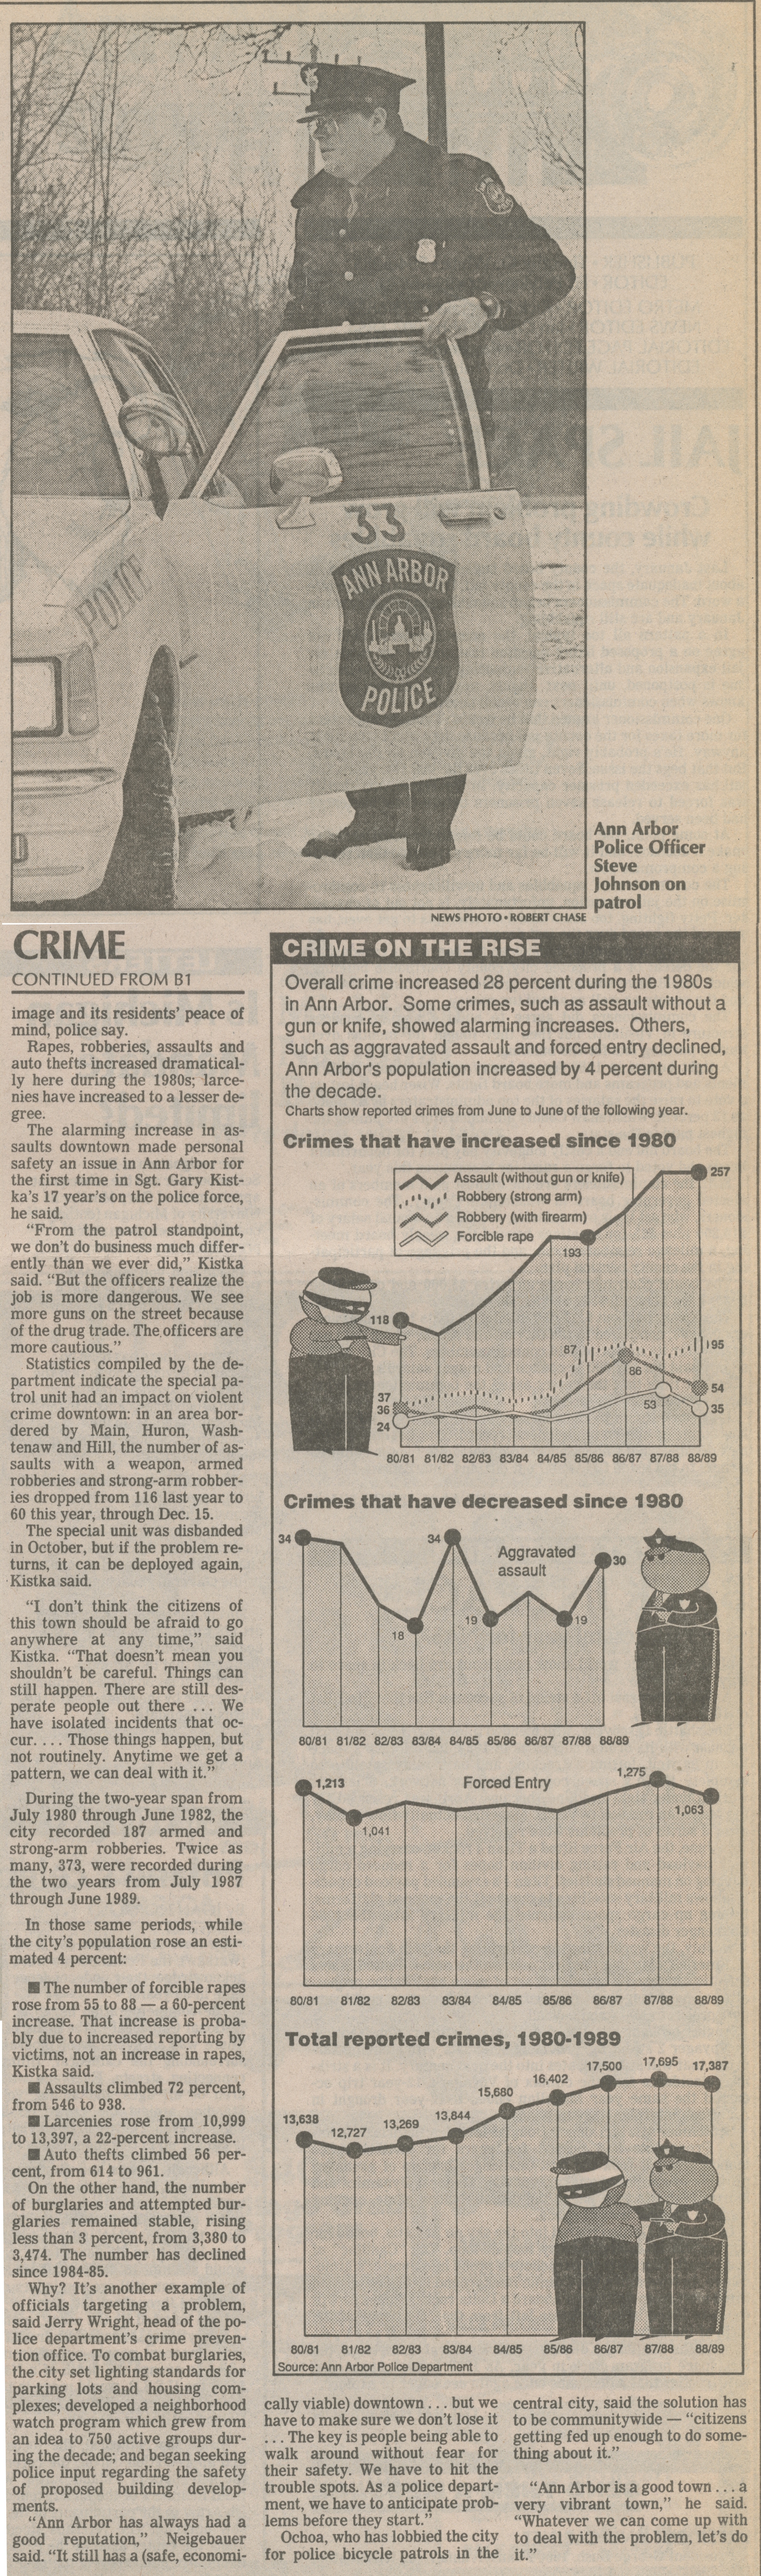 Robberies, Assaults Rise In '80s image